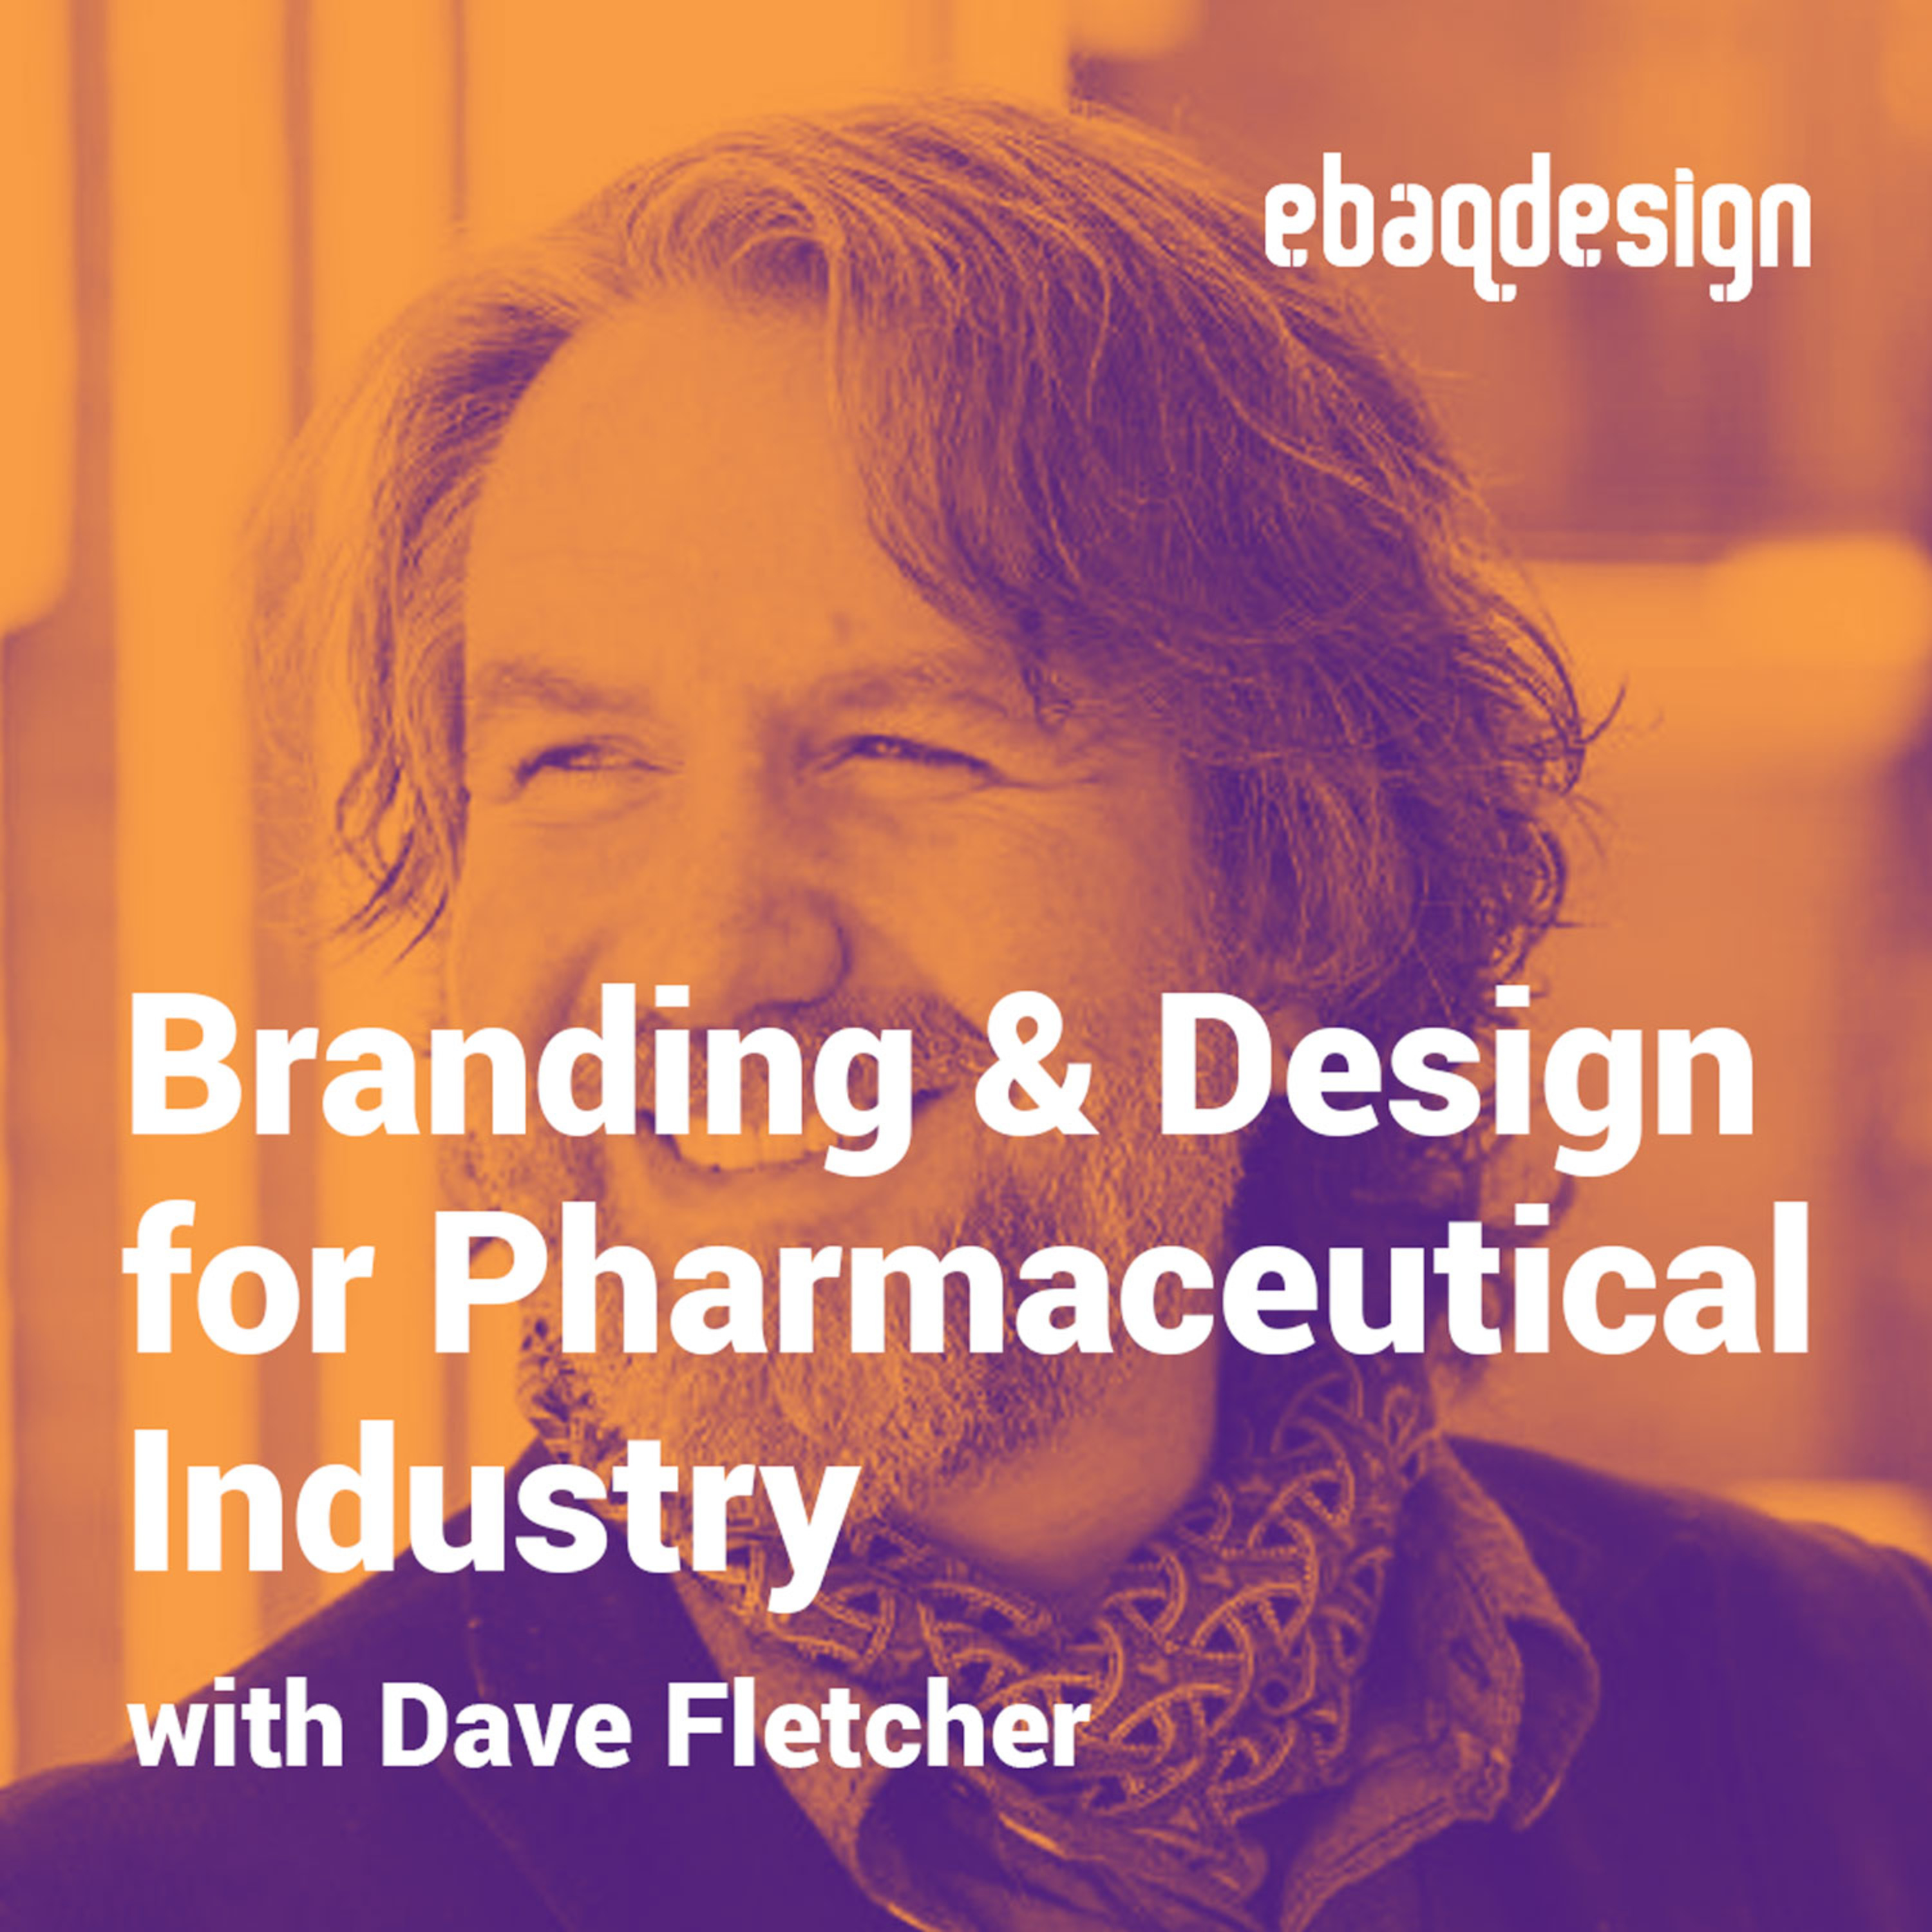 Branding & Design for Pharmaceutical Industry with Dave Fletcher